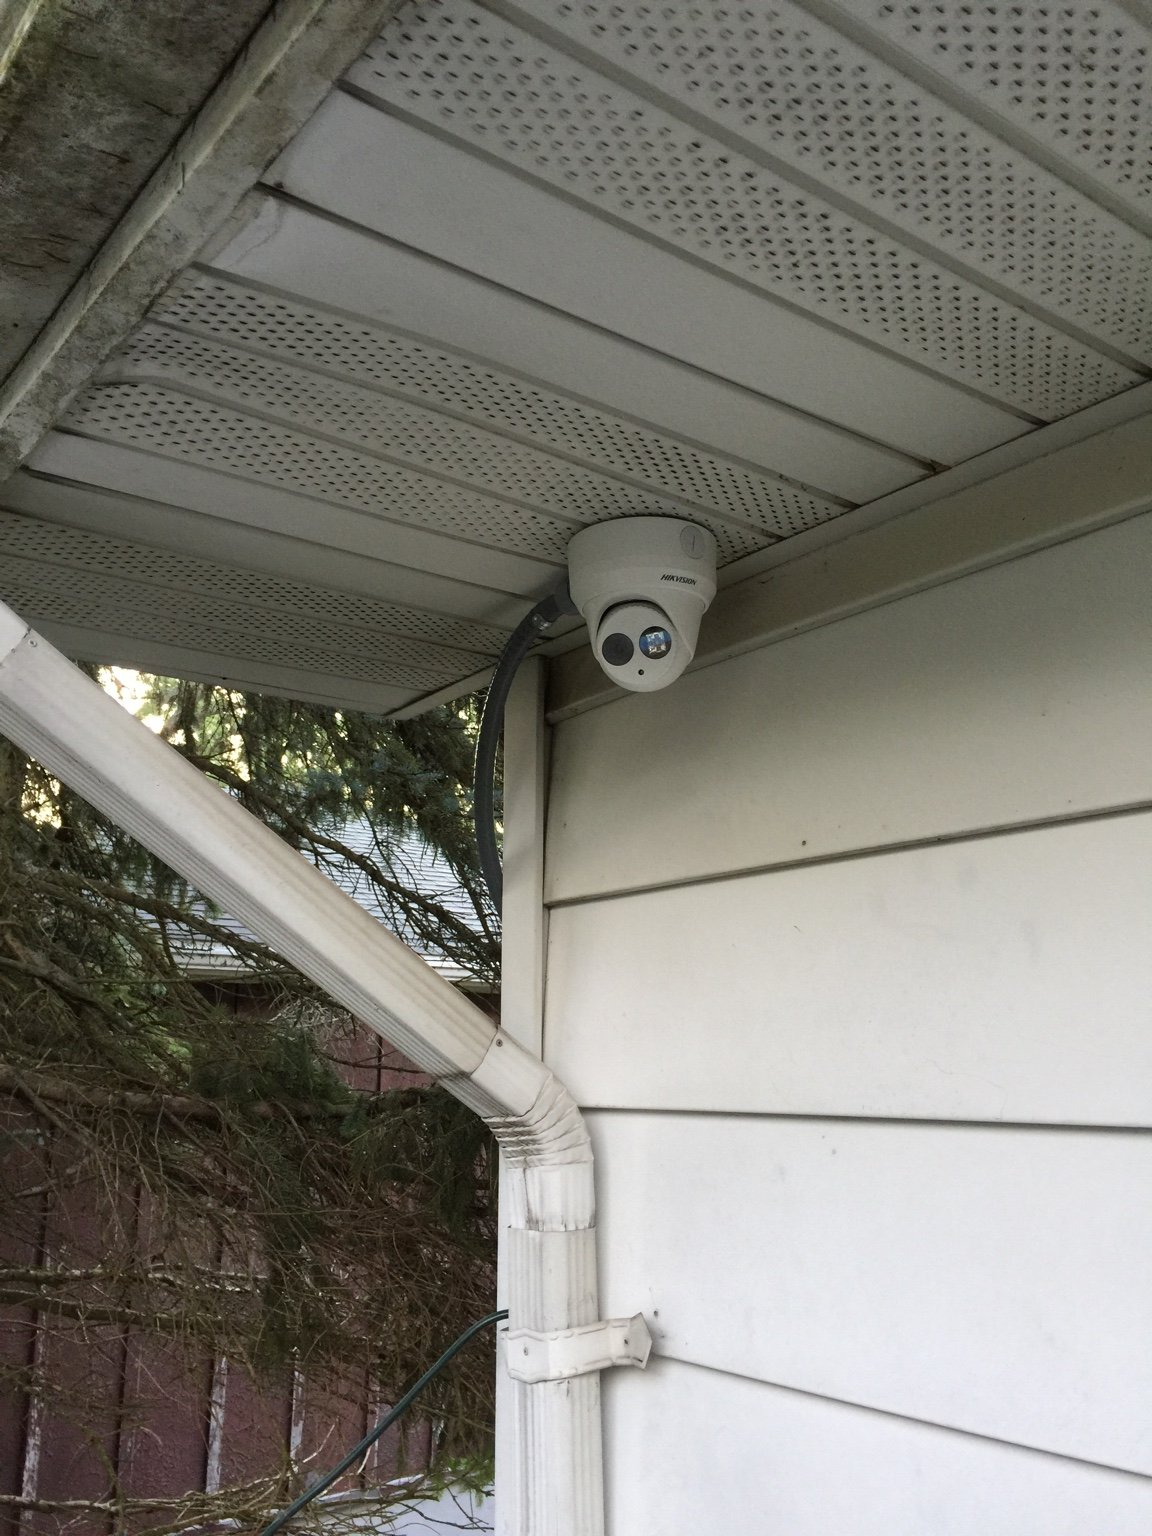 Install Advice Under Soffit For Dome Camera I Botched My